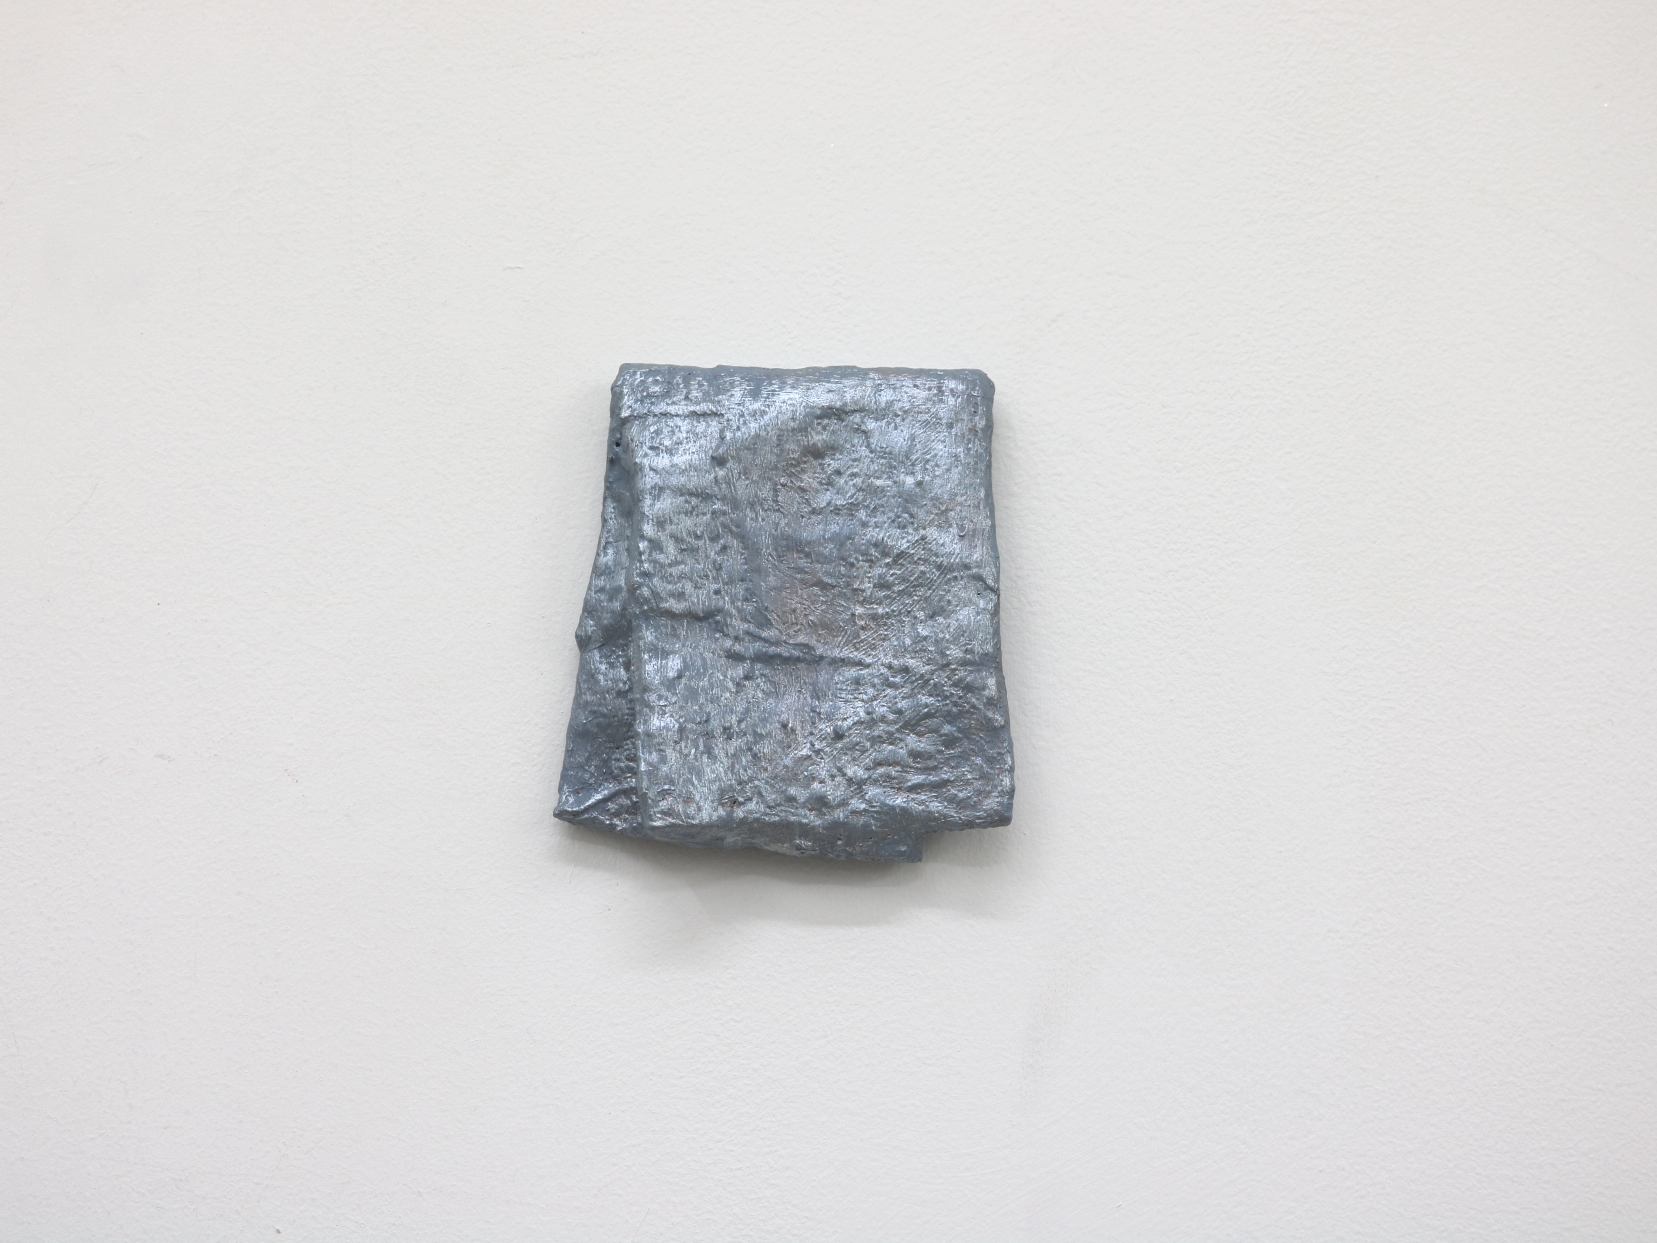 Fold Over | Charlie Franklin, 2018 | oil, acrylic, scrim, plaster, cardboard | 12cm x 10cm x 3cm | image: courtesy of the artist